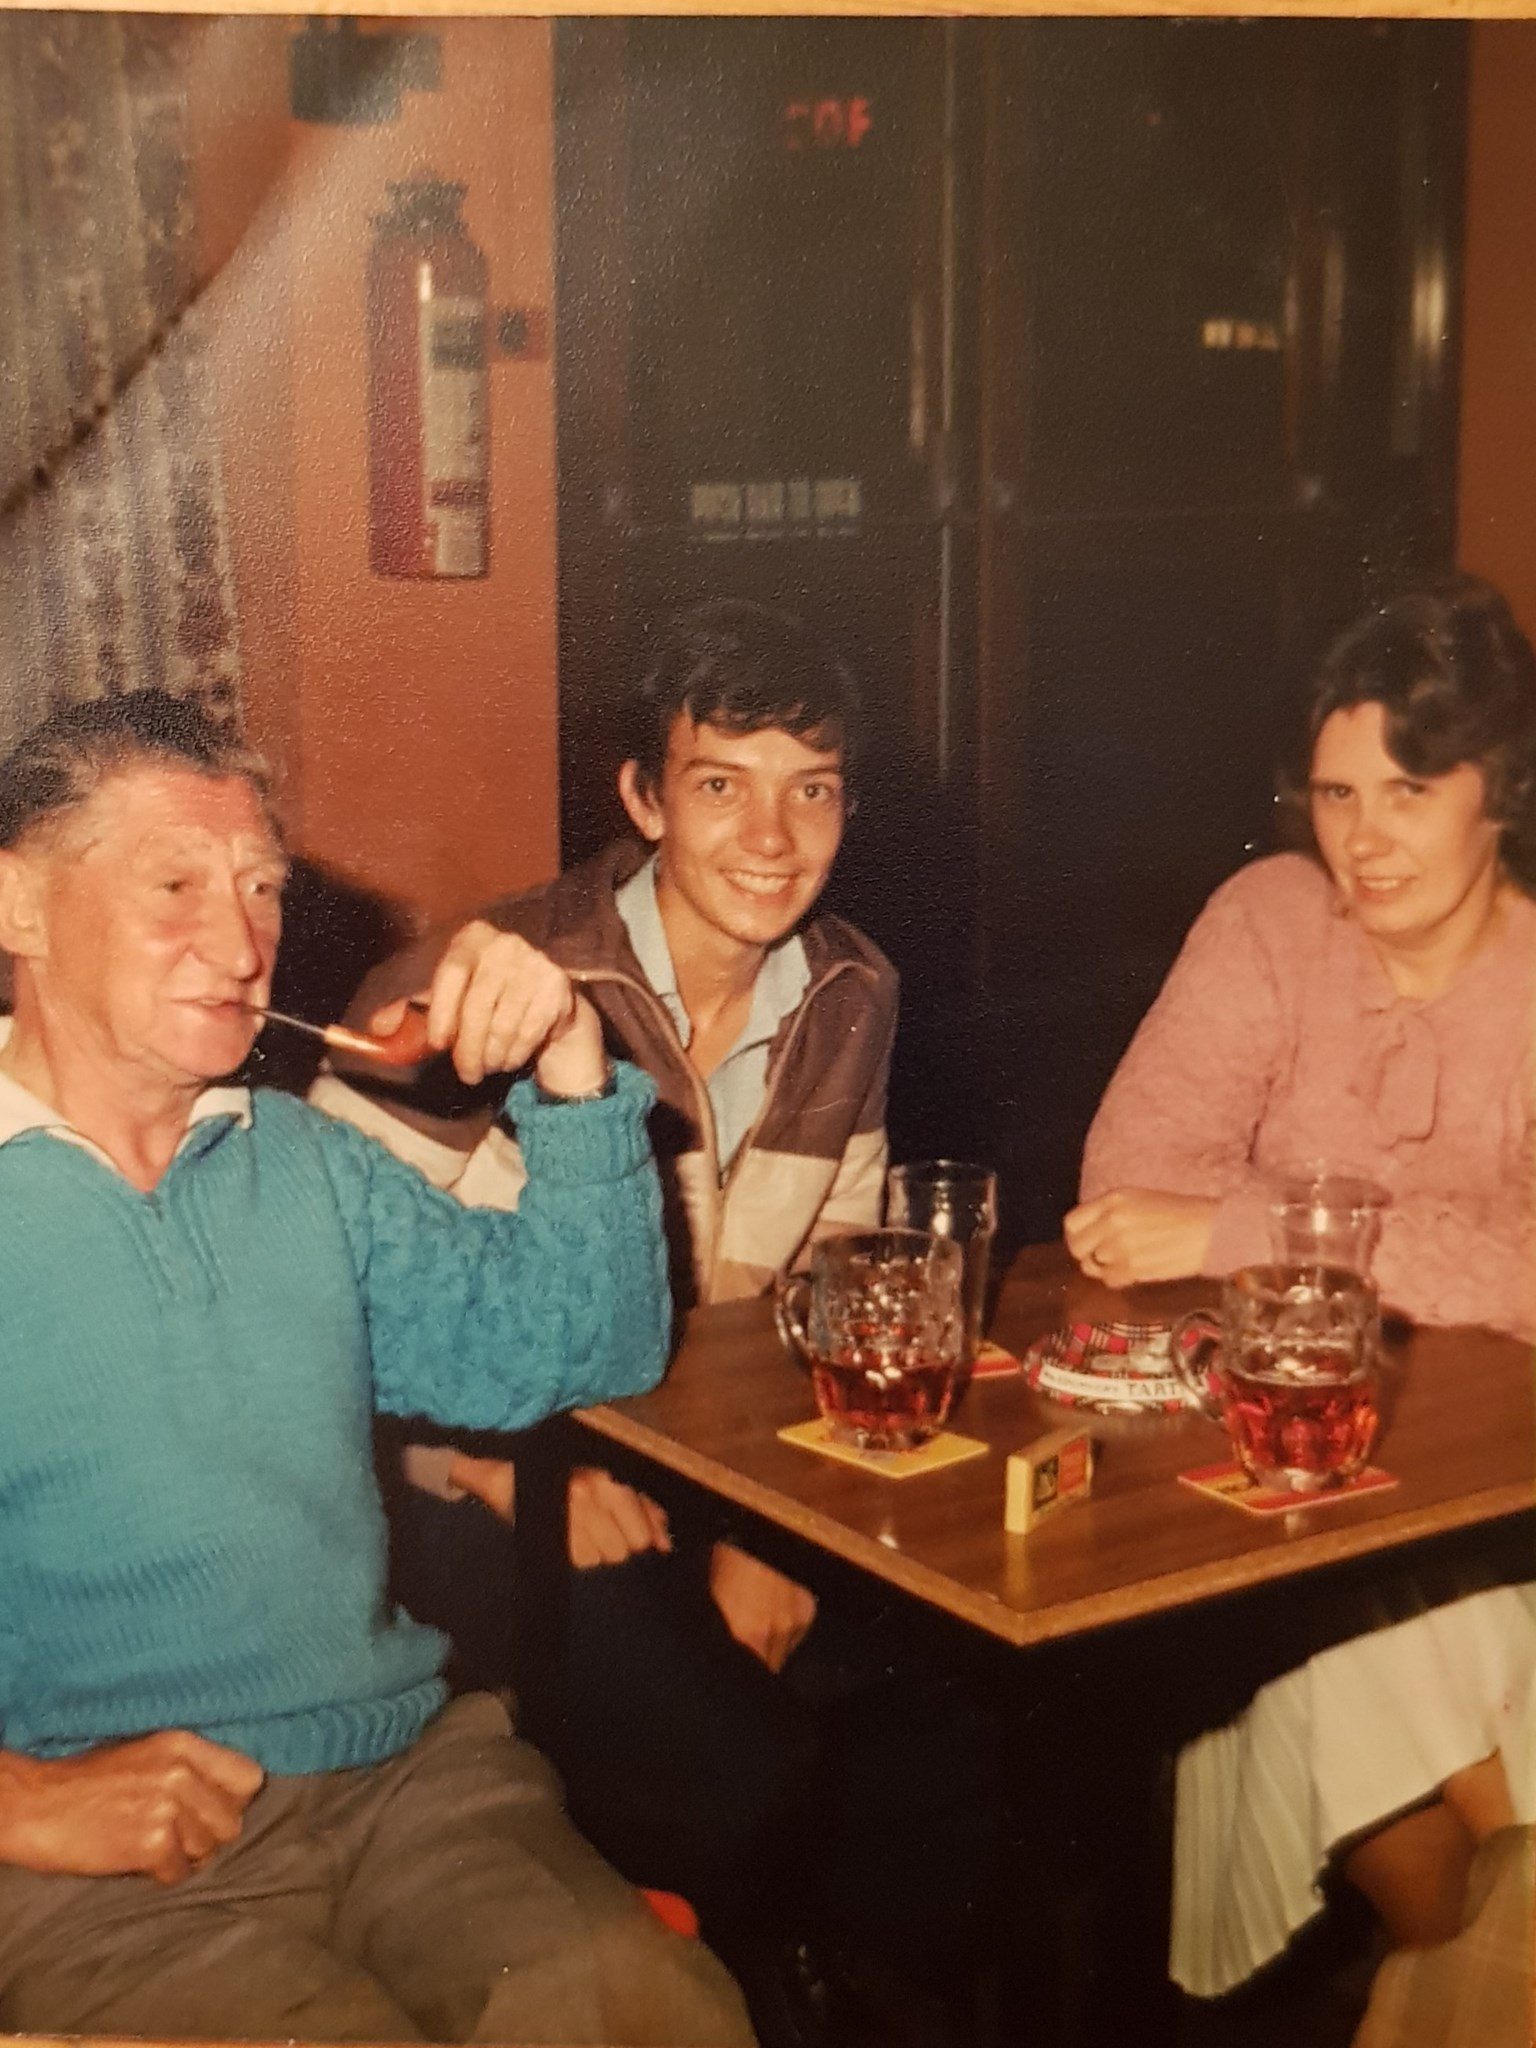 Me with Mum and Dad on holiday